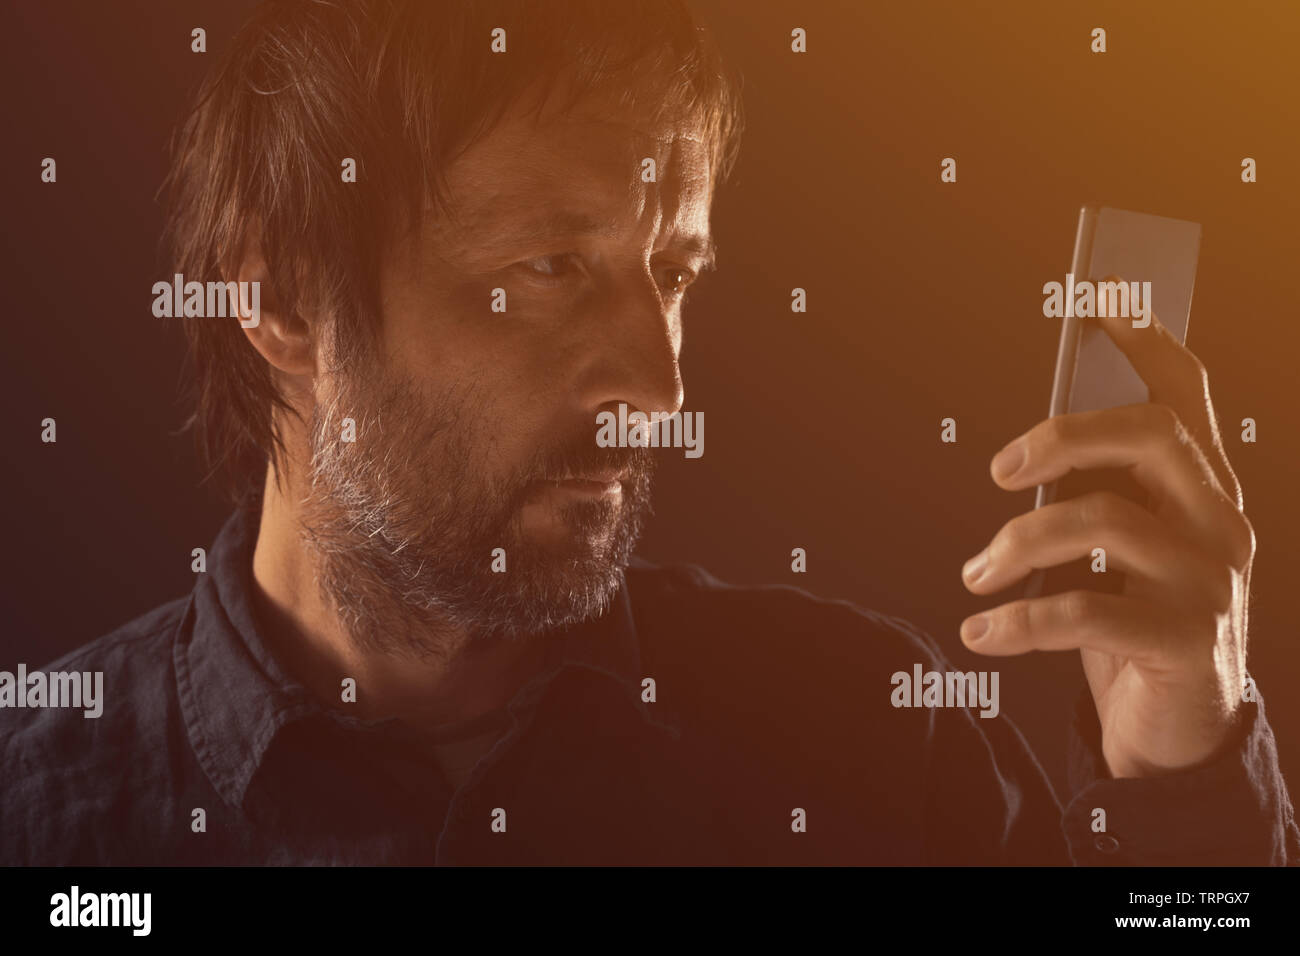 Adult man looking at mobile phone screen. Portrait of caucasian male with beard using modern smartphone. Stock Photo